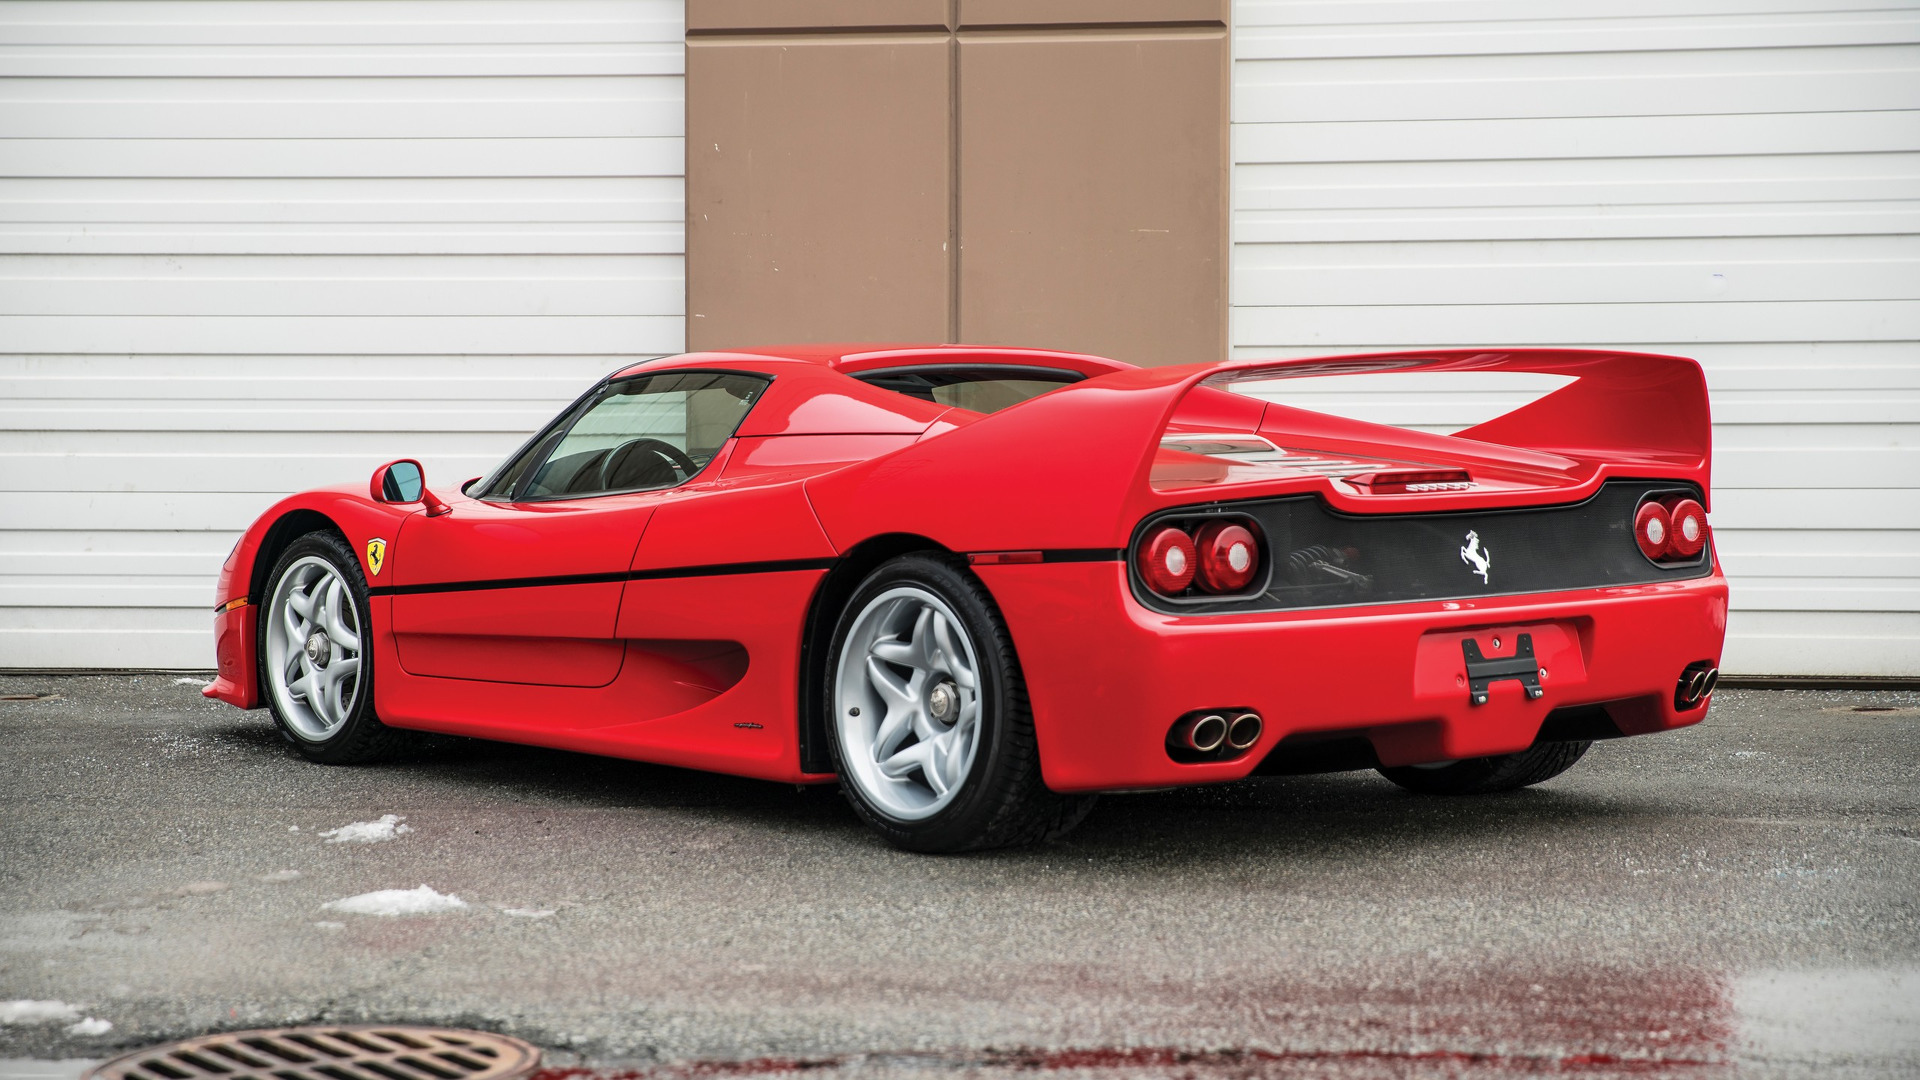 1995 Ferrari F50 Owned By Mike Tyson 4 Alles Auto